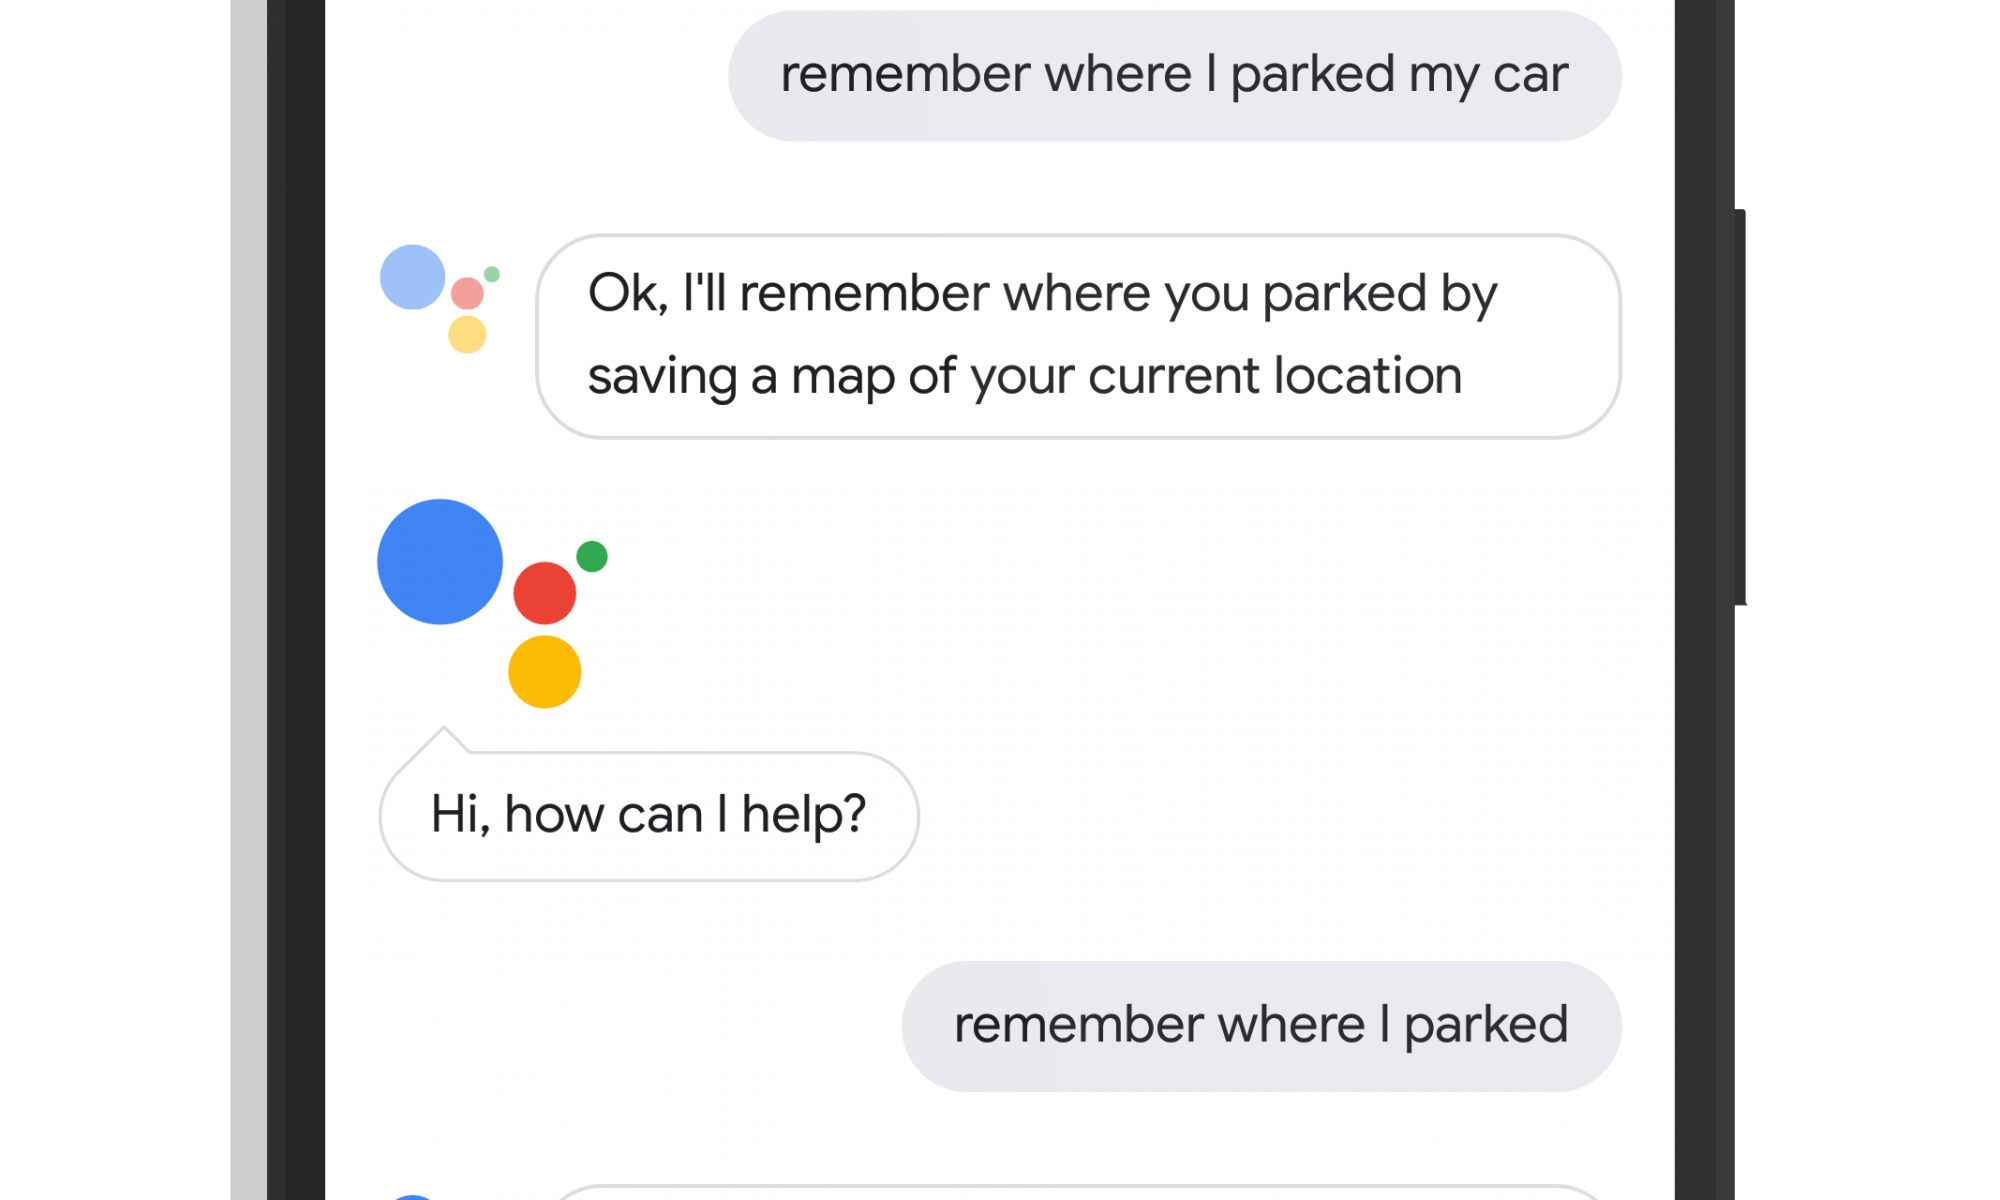 Google Assistant Remembers Where You Parked